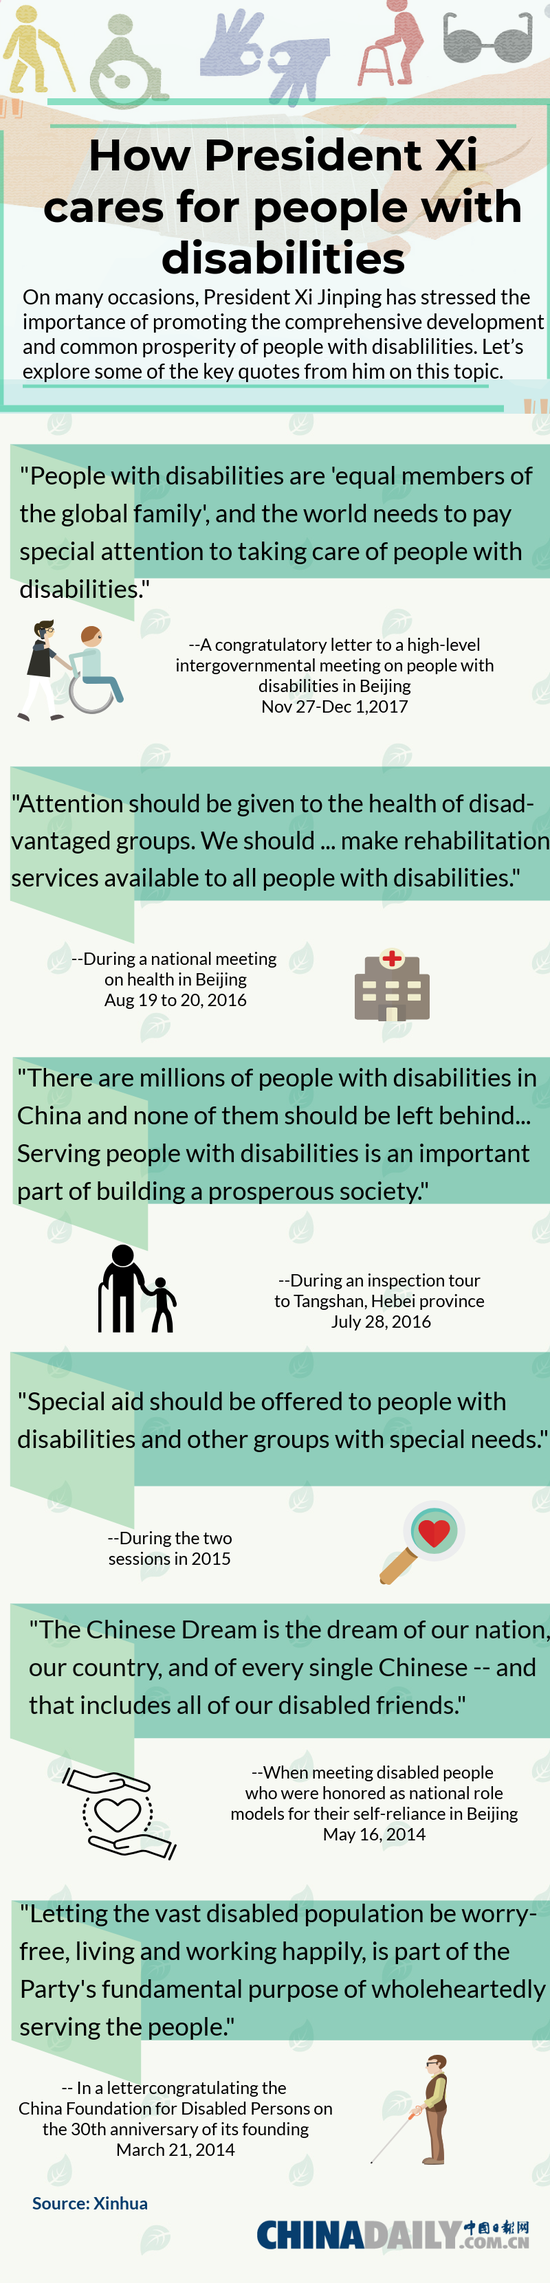 How President Xi cares for people with disabilities